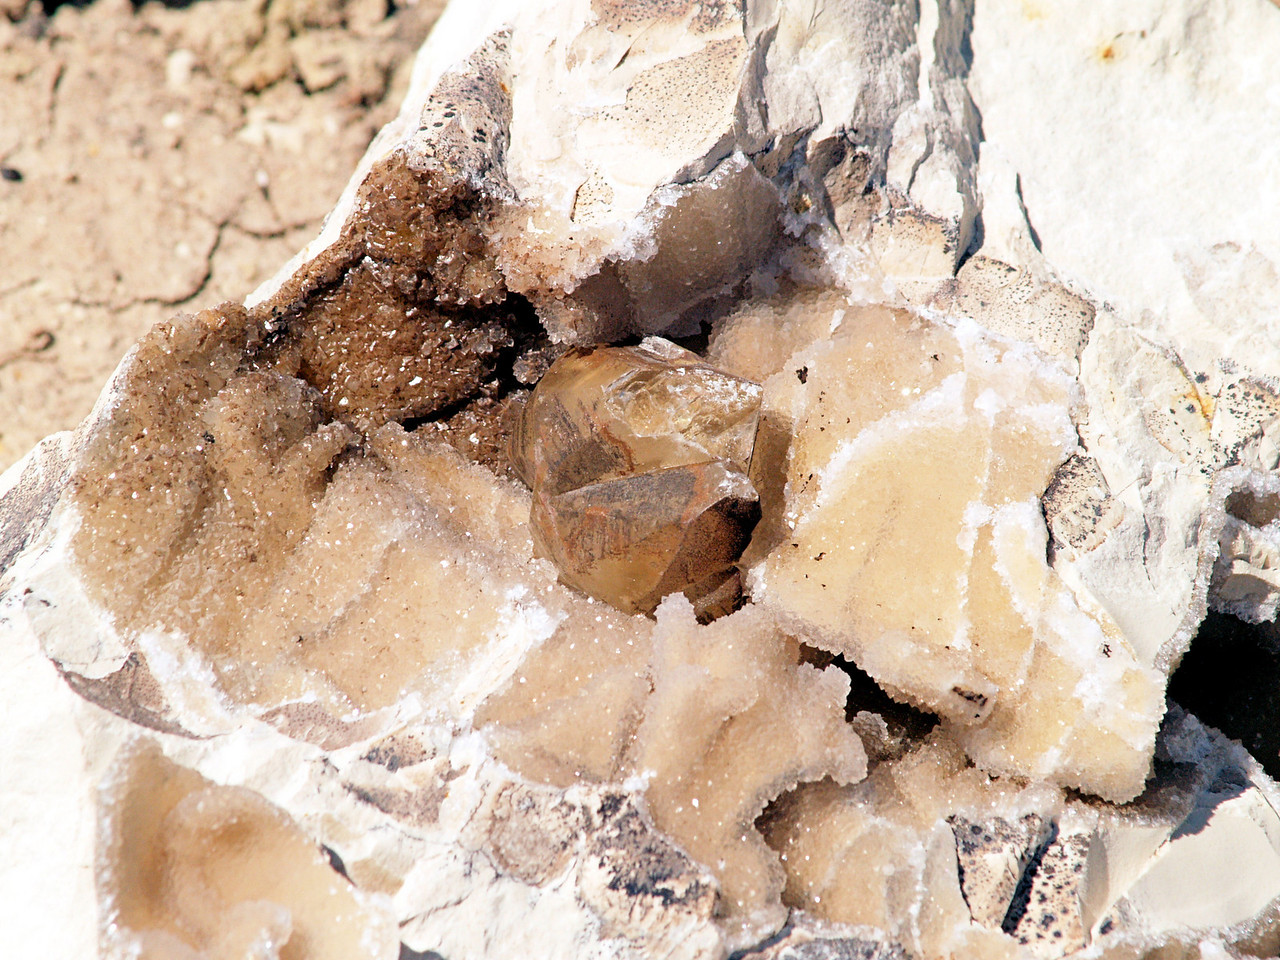 OLYMPUS DIGITAL CAMERA--Calcite twin crystals in a vug inside a concretions.  These are some of the largest crystals I have ever found at any of the uranium mines.